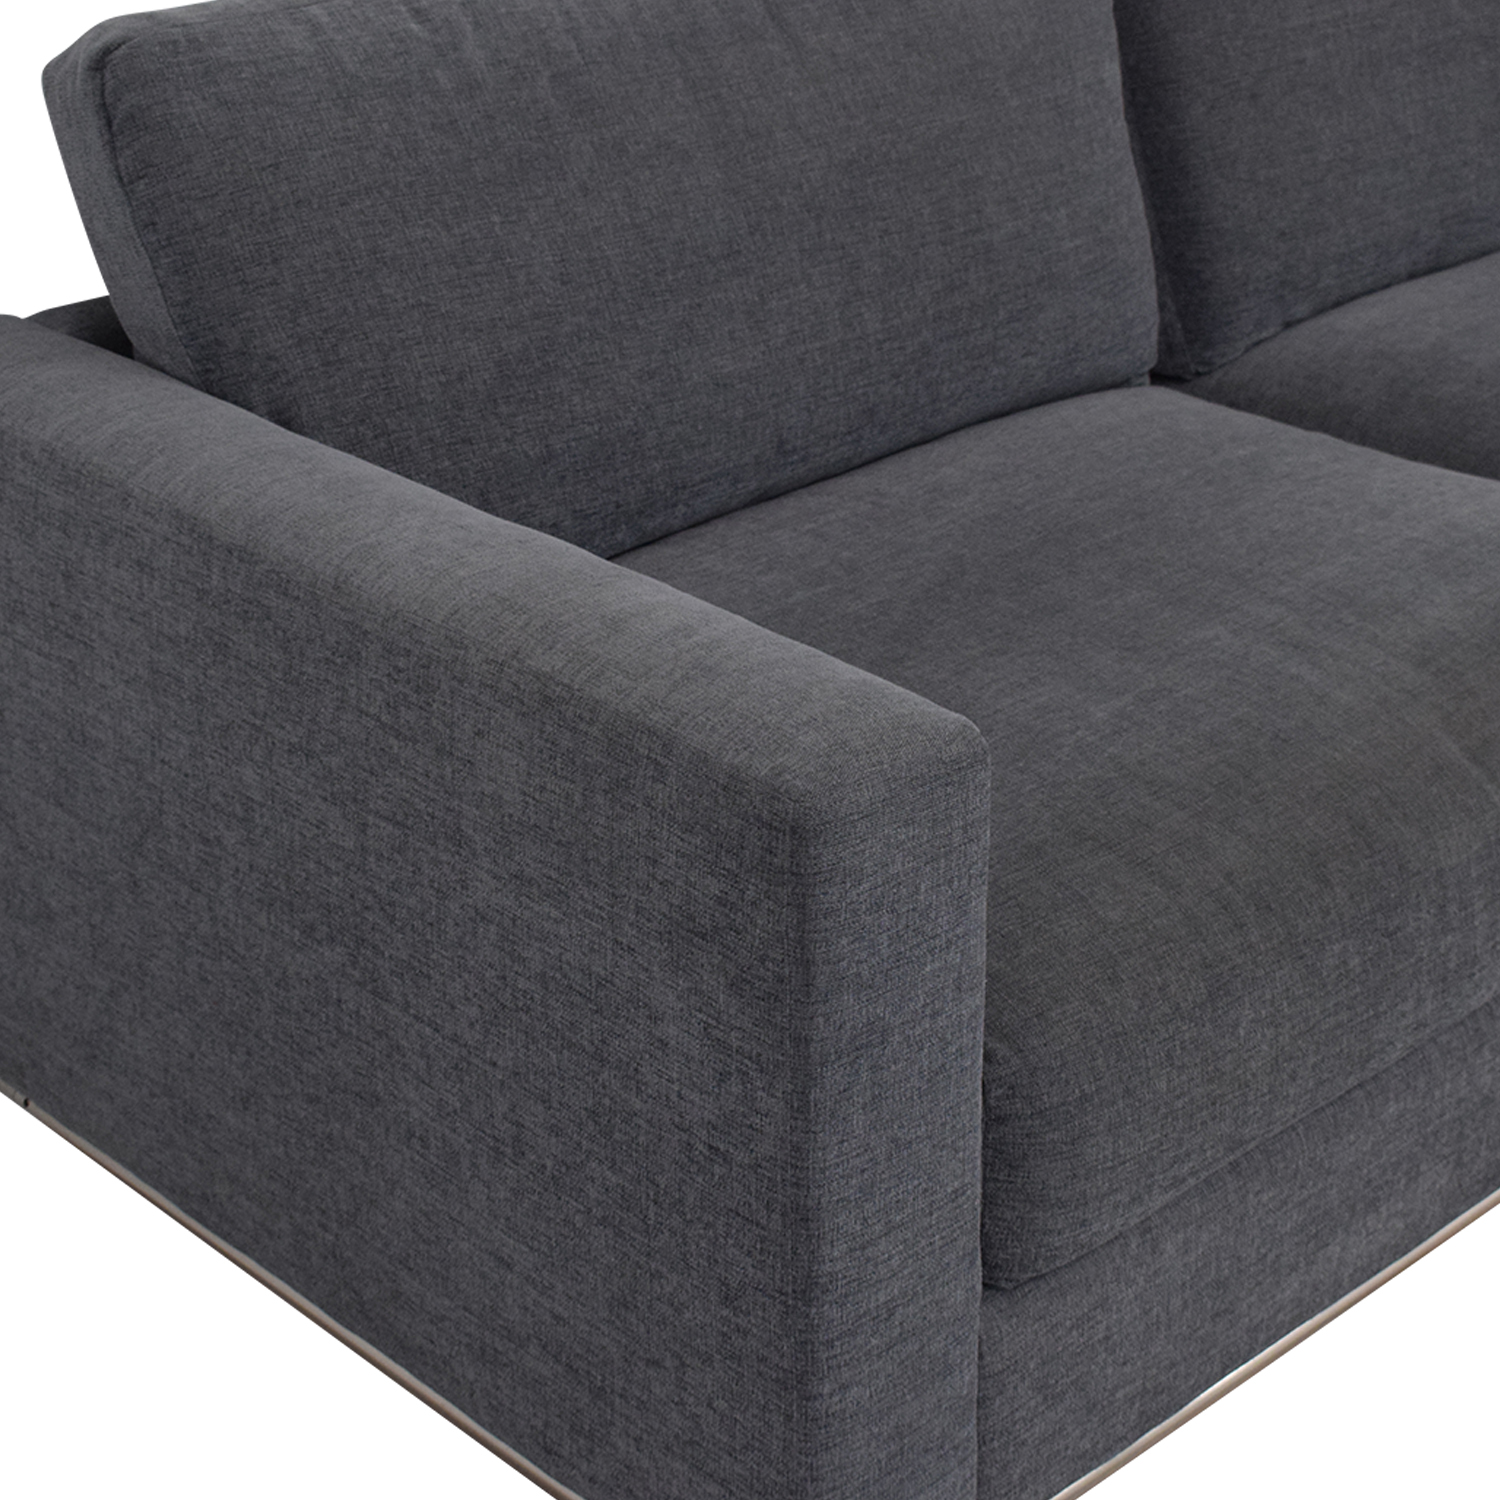 buy Weiman Sectional Sofa with Chaise Weiman